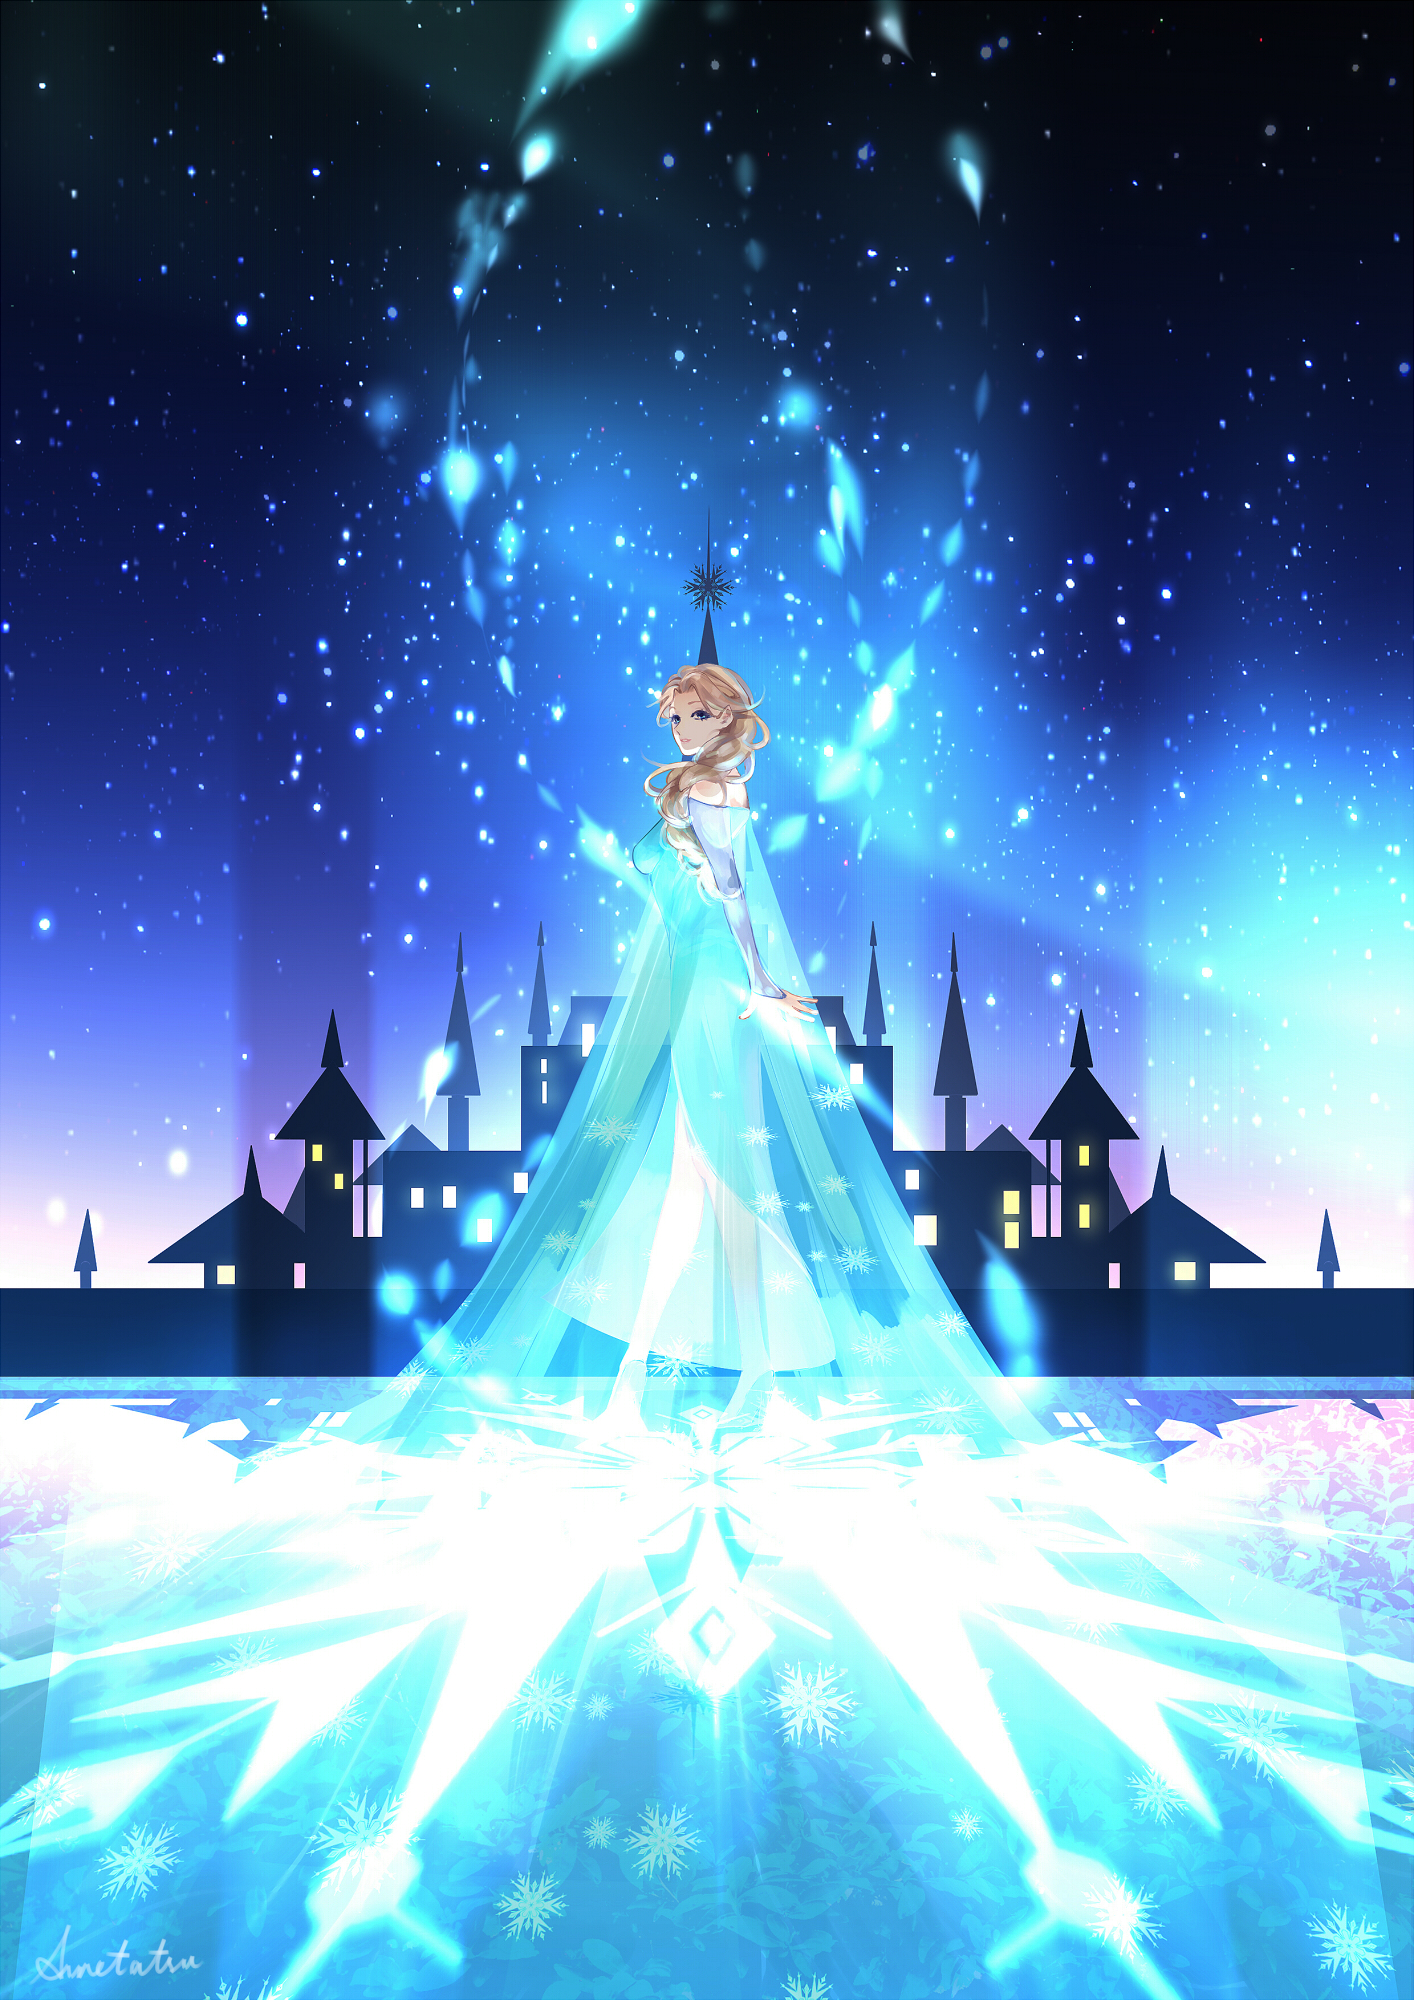 Elsa the Snow Queen, Fanart | page 2 - Zerochan Anime